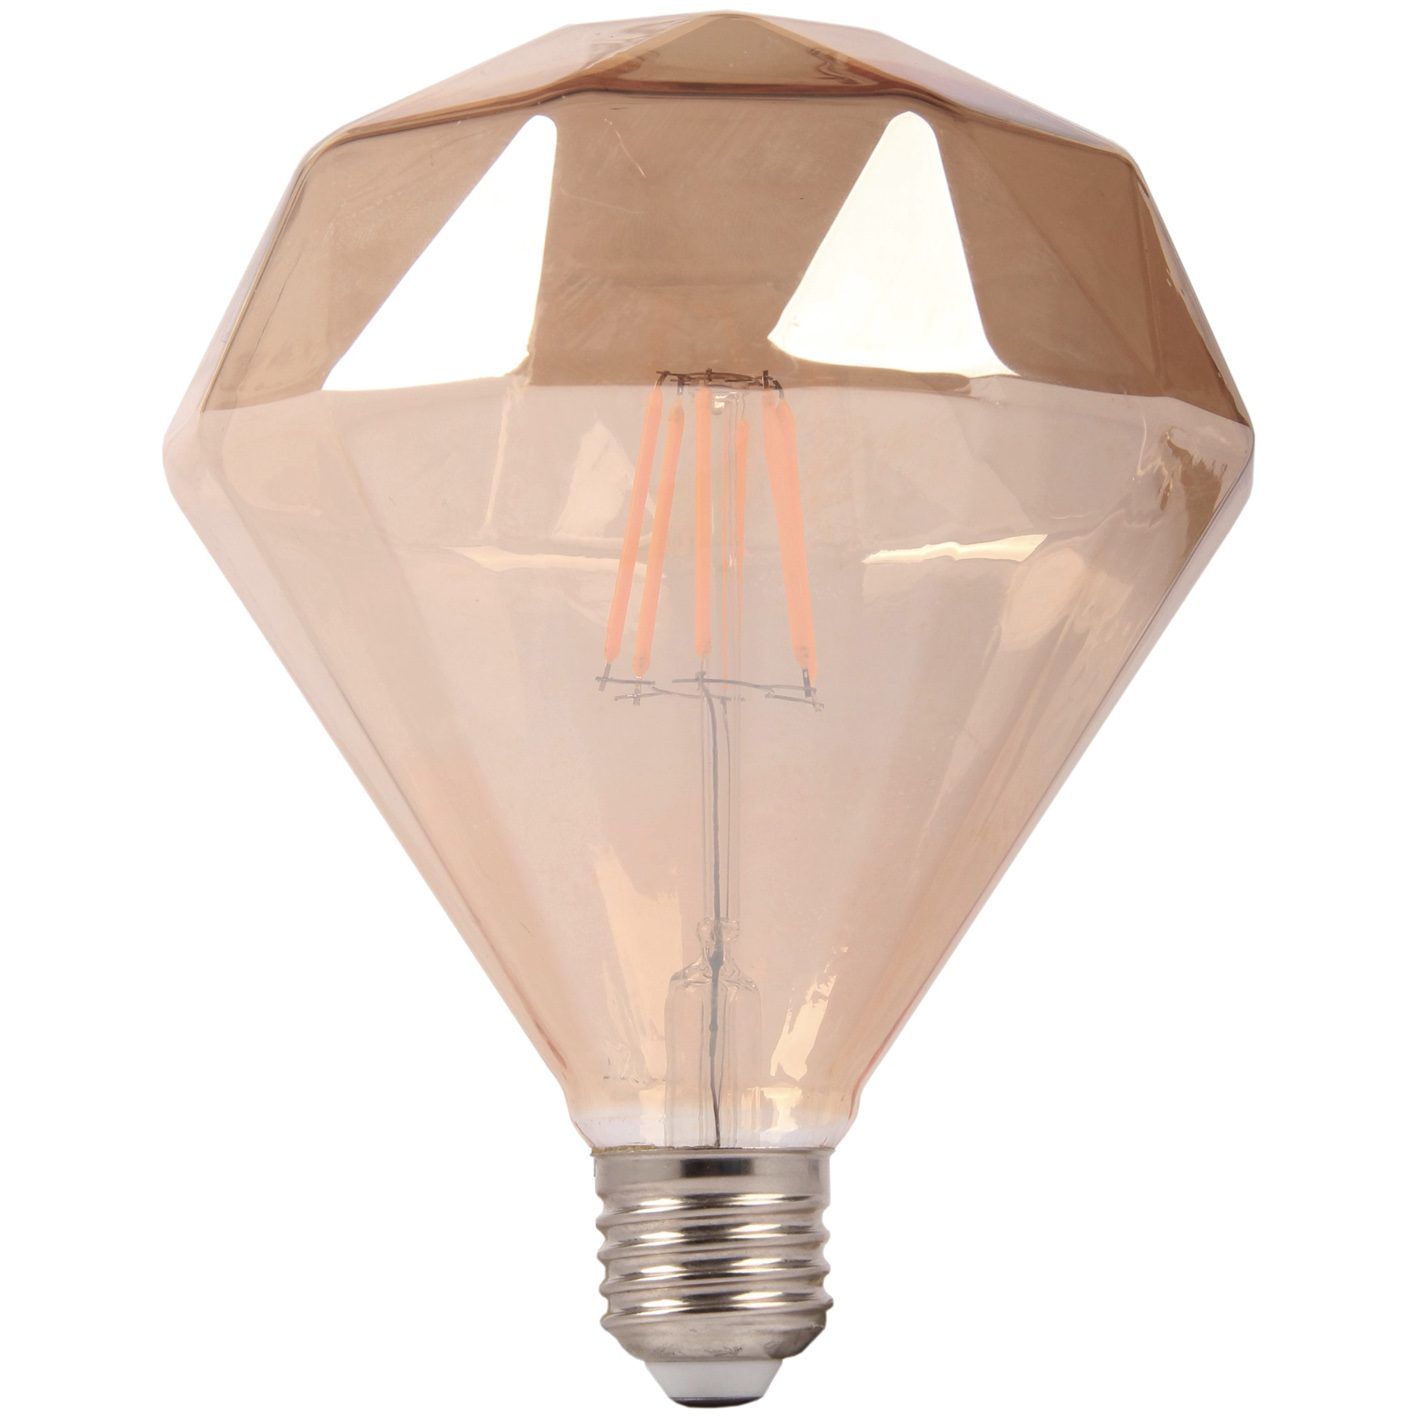 Glühlampe LED filament E27 6W gelbbraun elegante Diamond Lamp